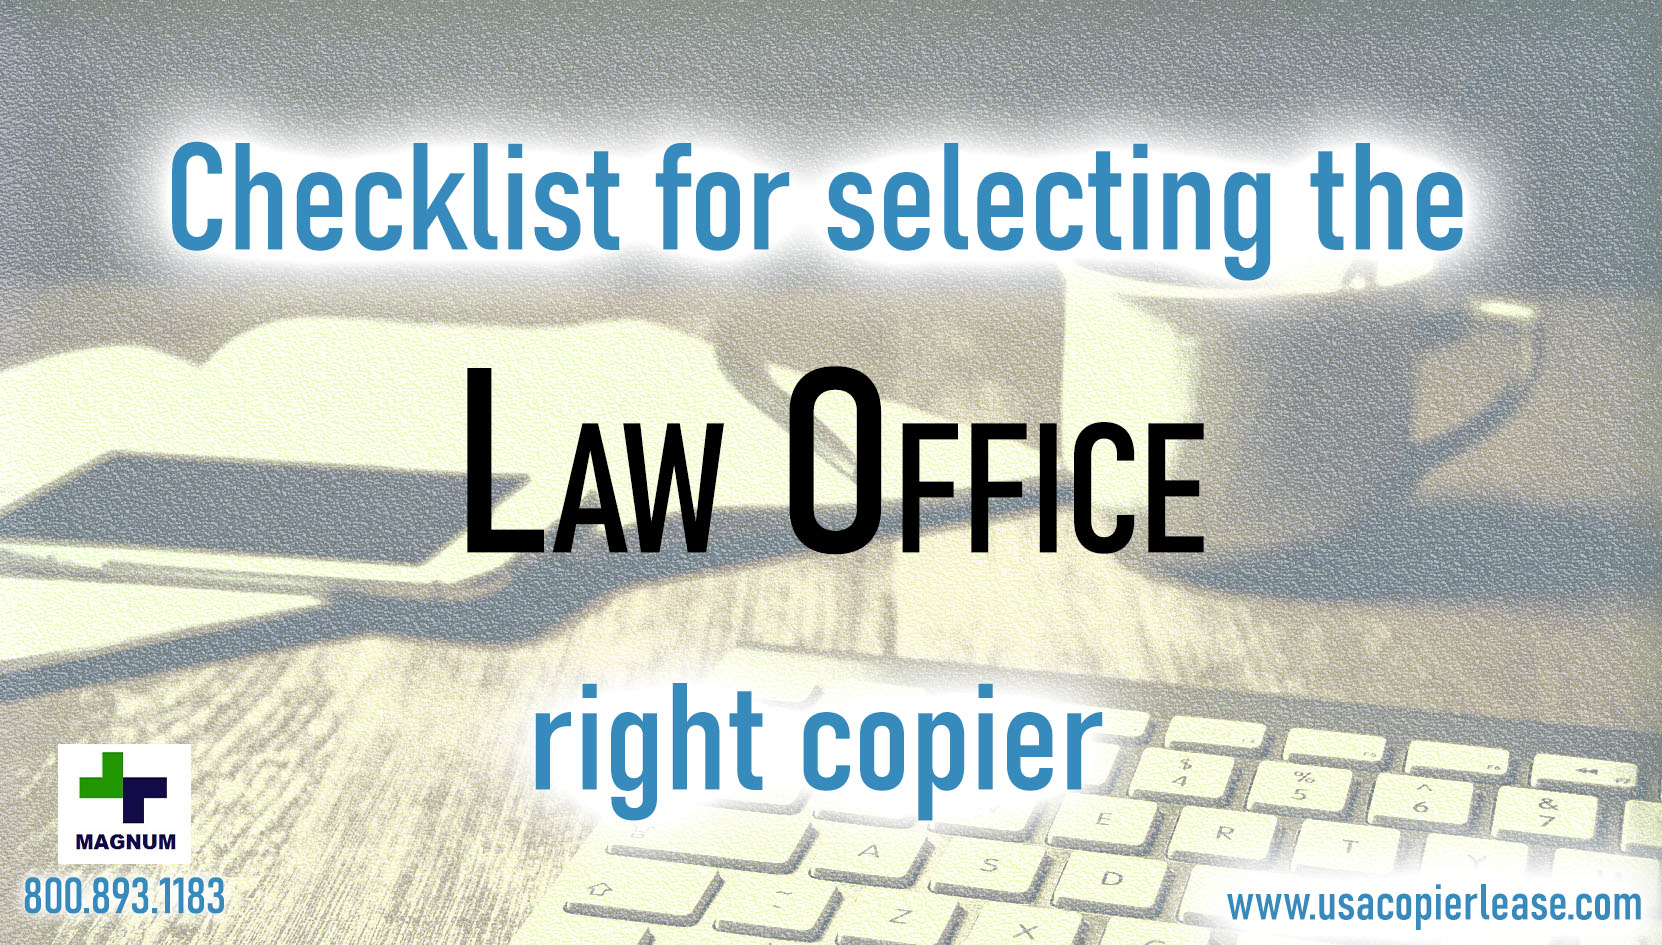 6 Secrets To Getting The Right Copier For Your Law Firm